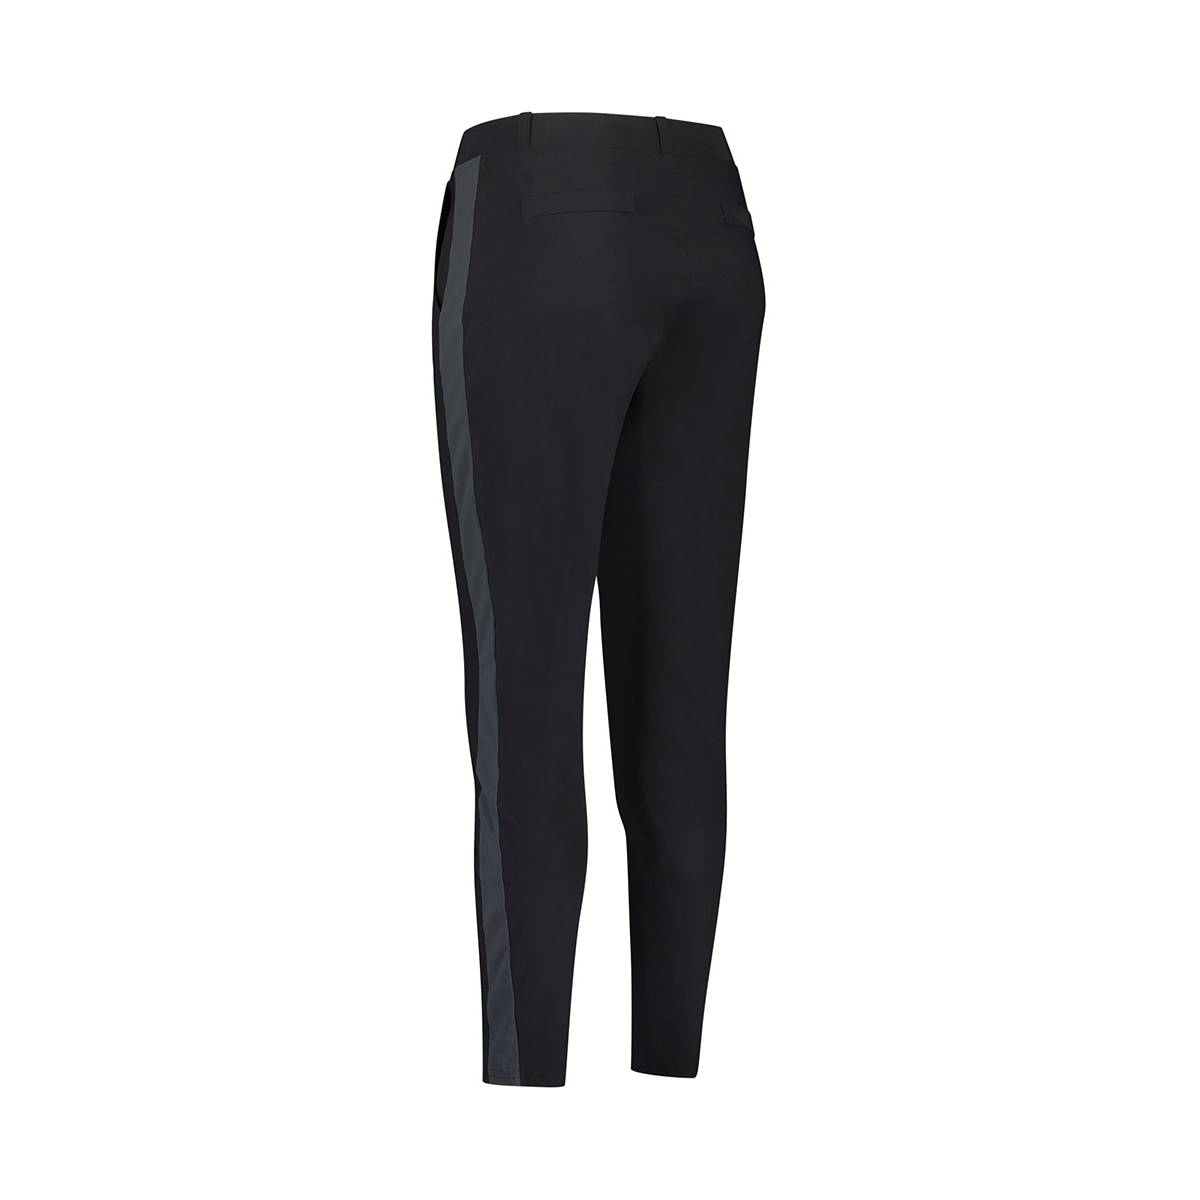 Studio Anneloes Toma trousers 05083 Zwart